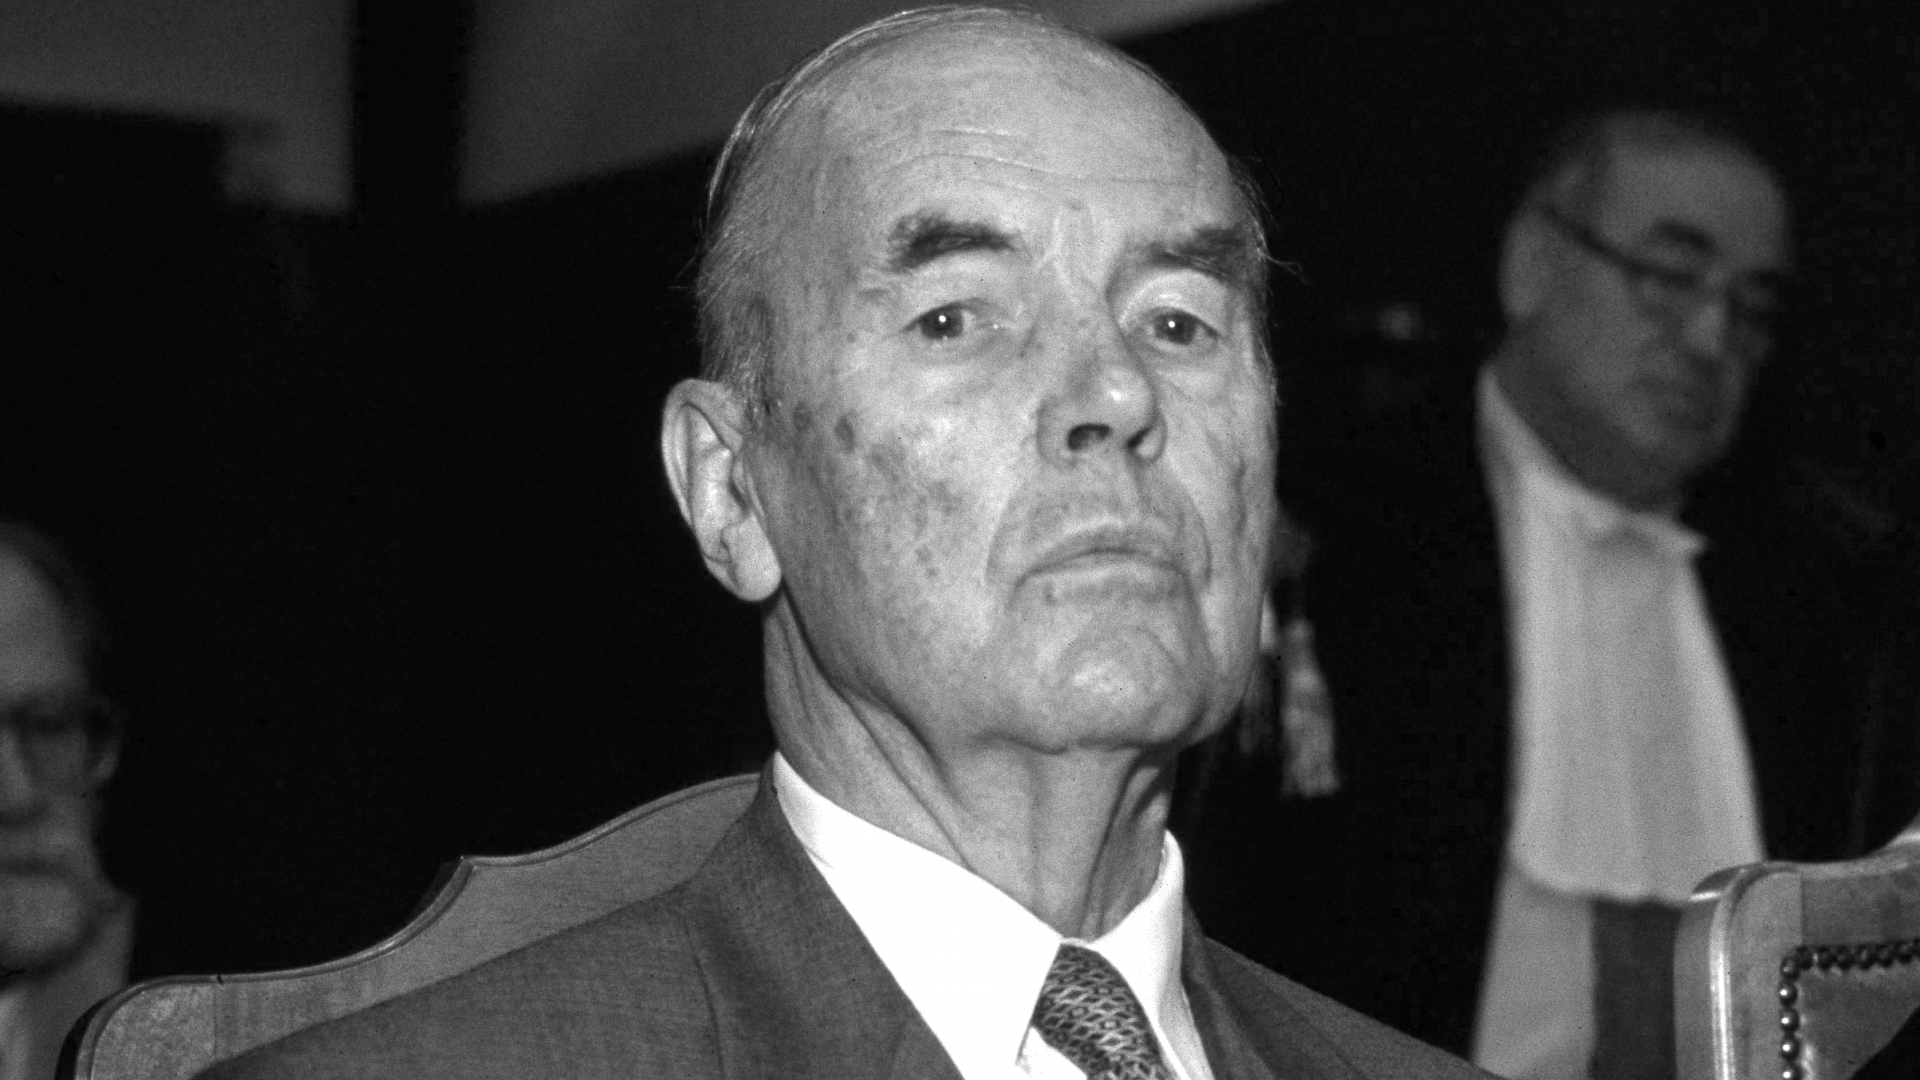 Former SS officer Erich Priebke during the trial at Military Court for participating in the 1944 Ardeatine caves massacre in Rome, where 335 civilians, including 75 Jews, were killed in retaliation for an ambush on German soldiers. He operated a Viennese deli in Patagonia until a 1994 street interview by journalist Sam Donaldson brought him to authorities' attention.  (Credit: Stefano Montesi/Corbis via Getty Images)